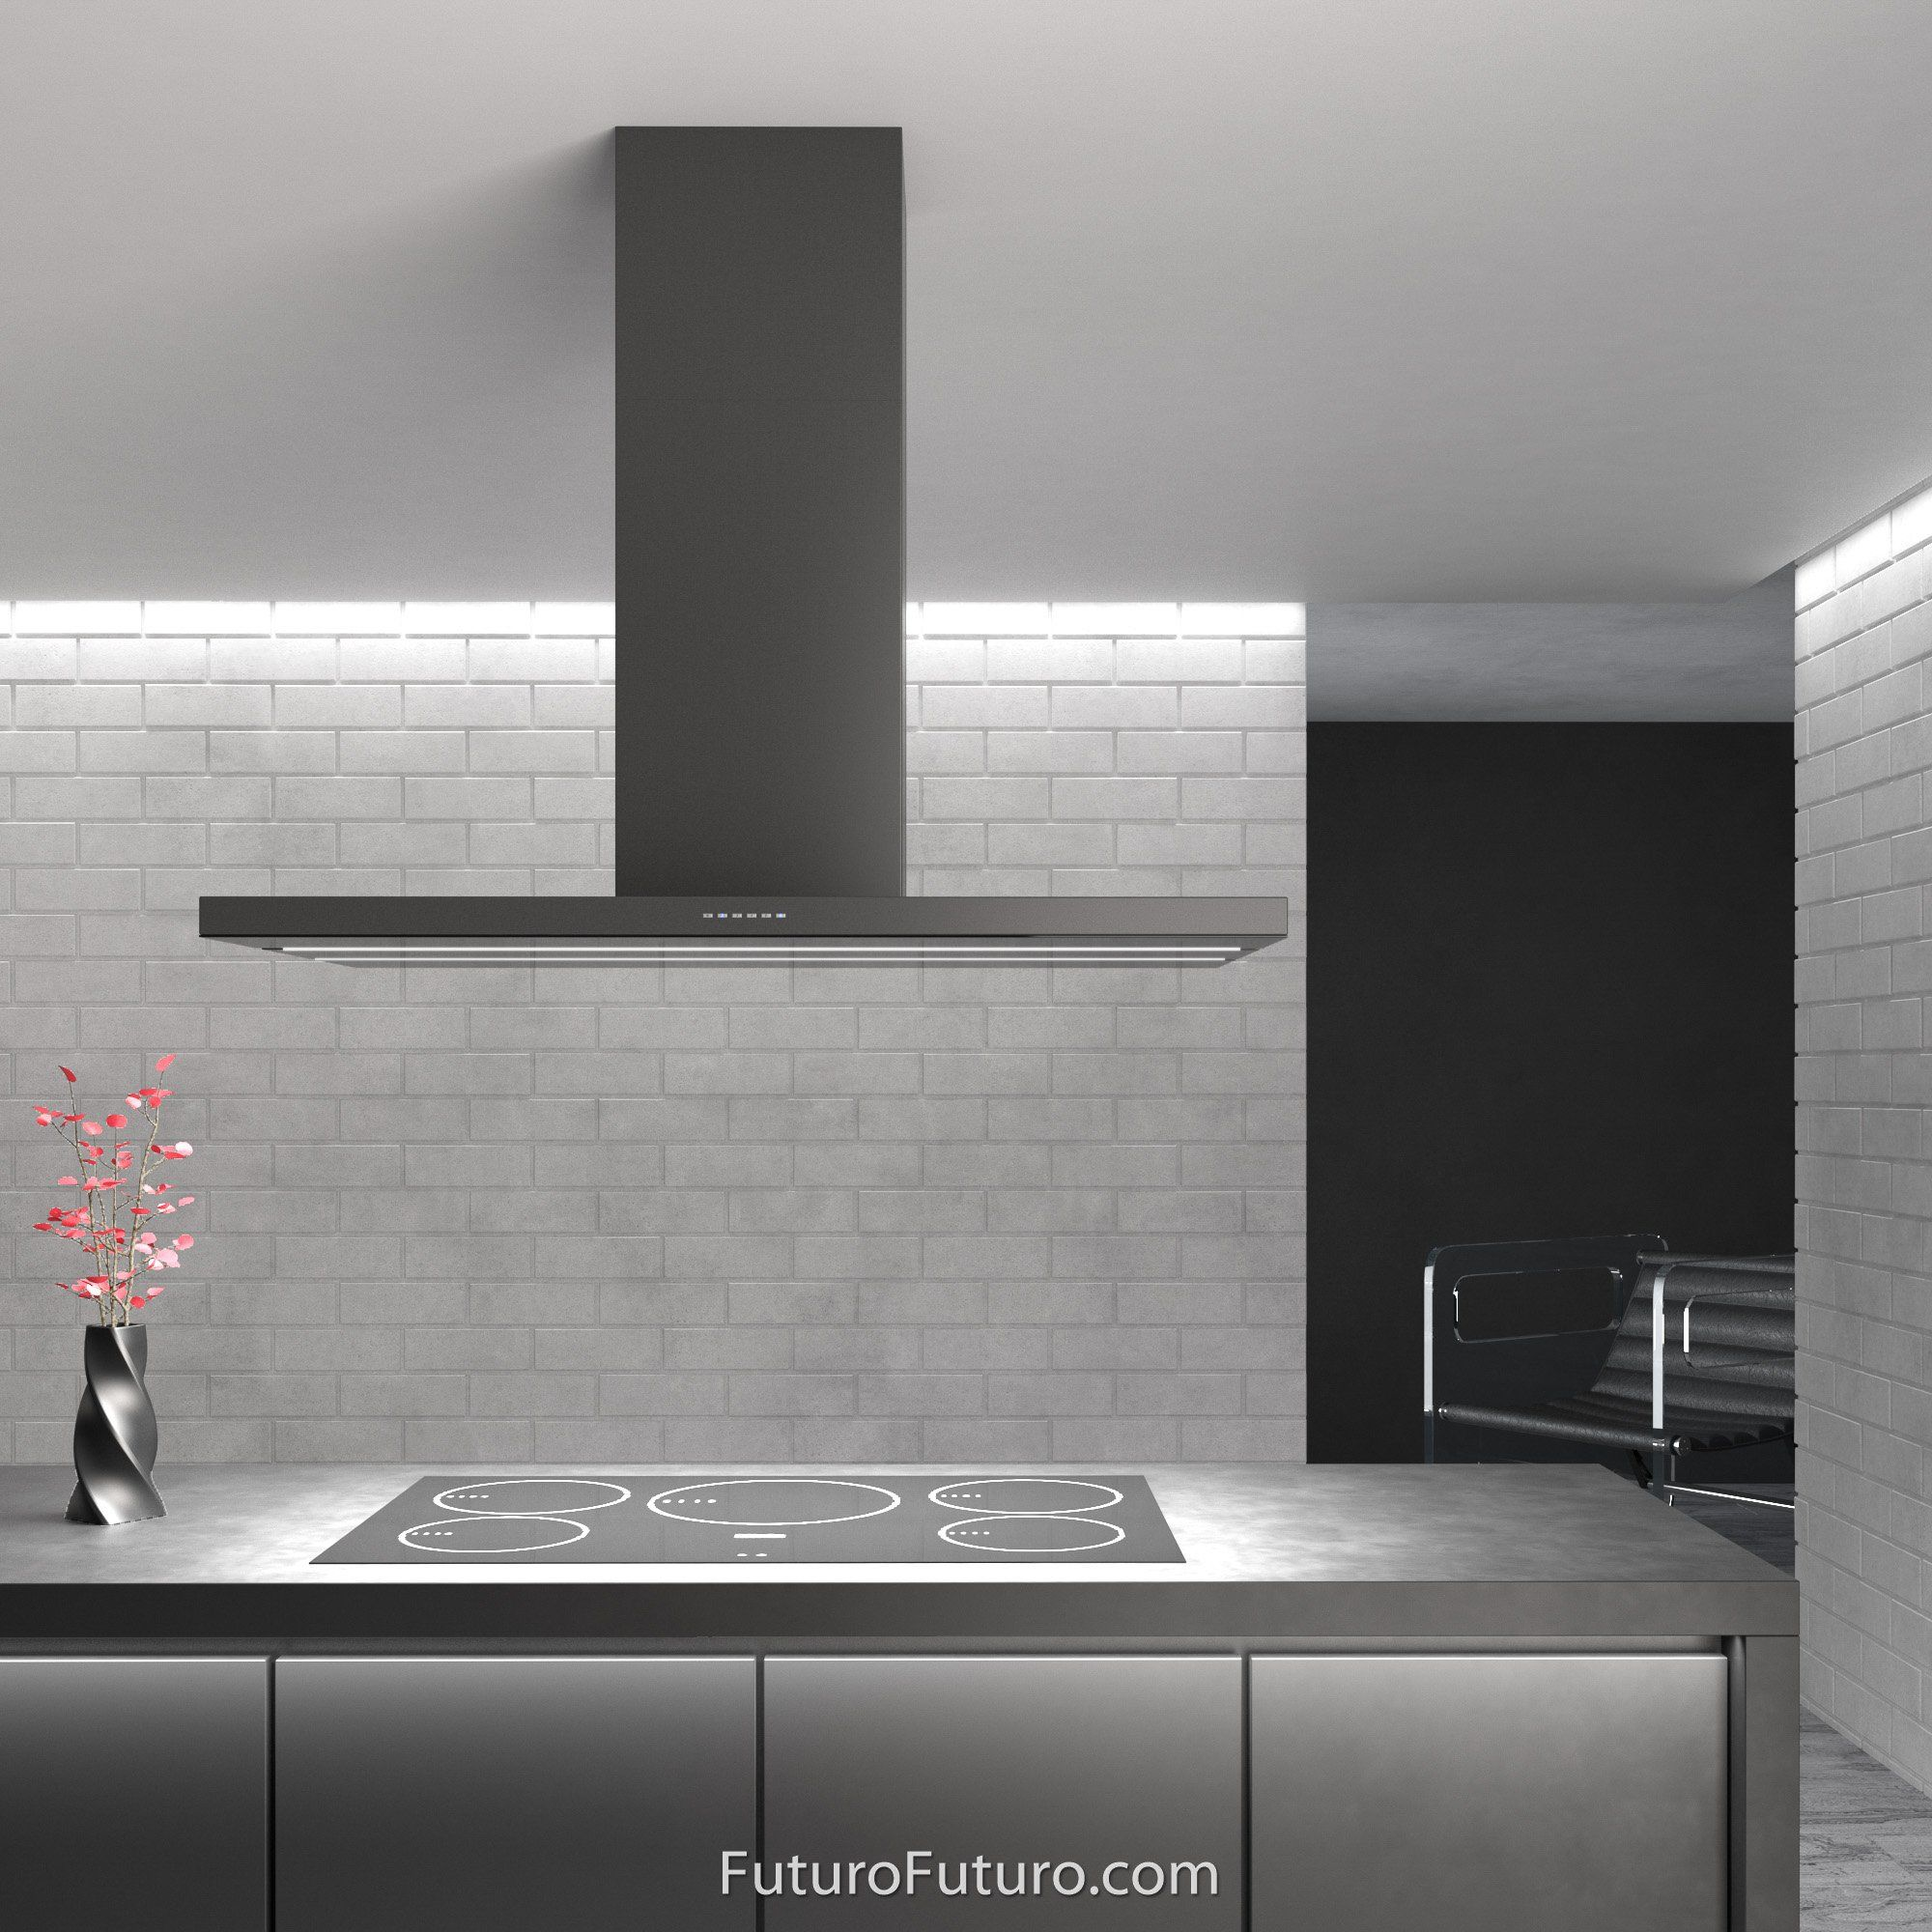 48 Viale Black Island Range Hood By Futuro Futuro In 2020 Island Range Hood Kitchen Exhaust Kitchen Ventilation